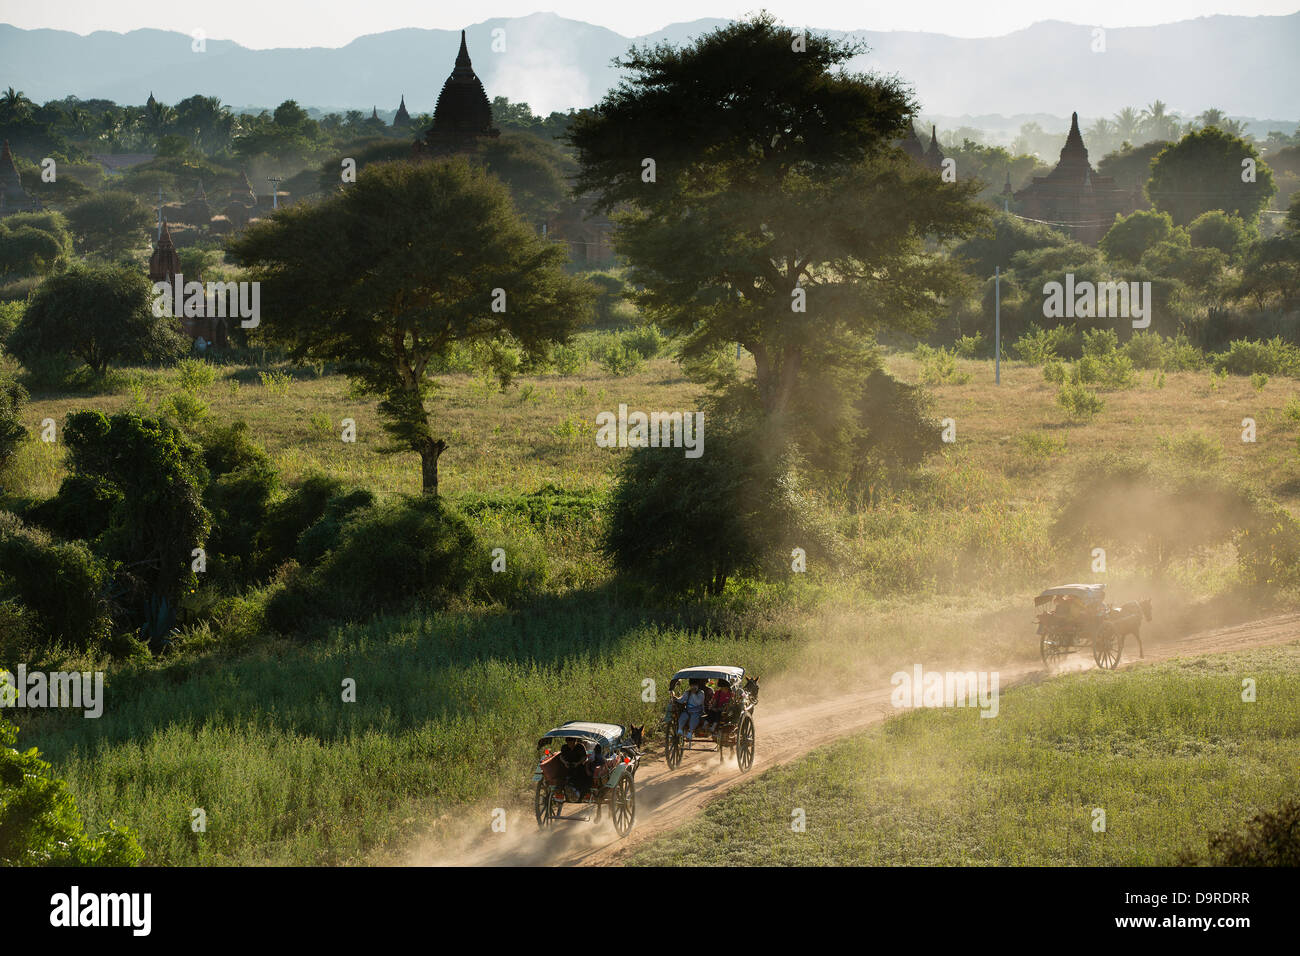 horse and carts in amongst the temples, Bagan, Myanmar (Burma) - Stock Image